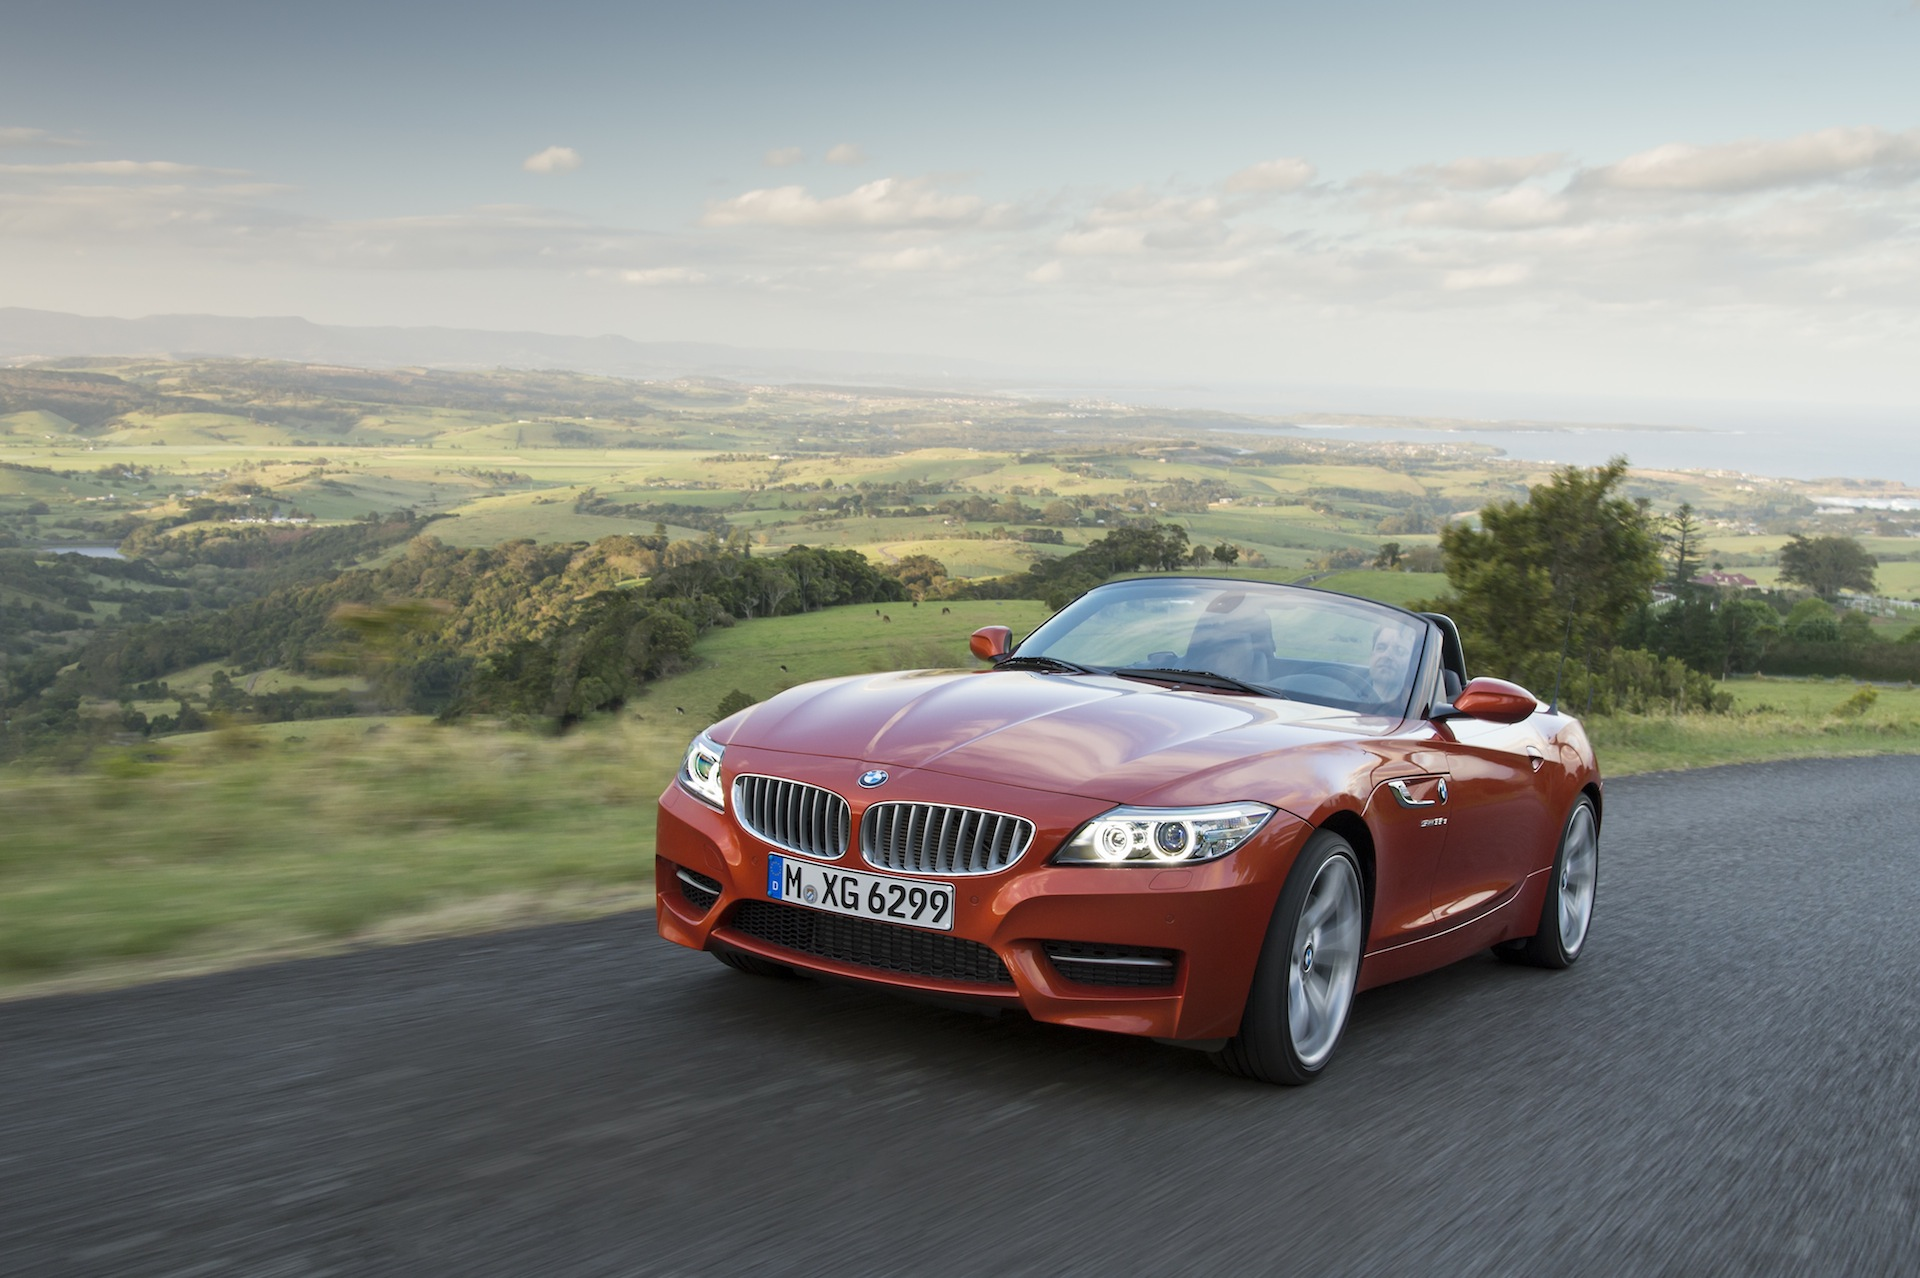 Presenting The Bmw Z4 Lci Facelift